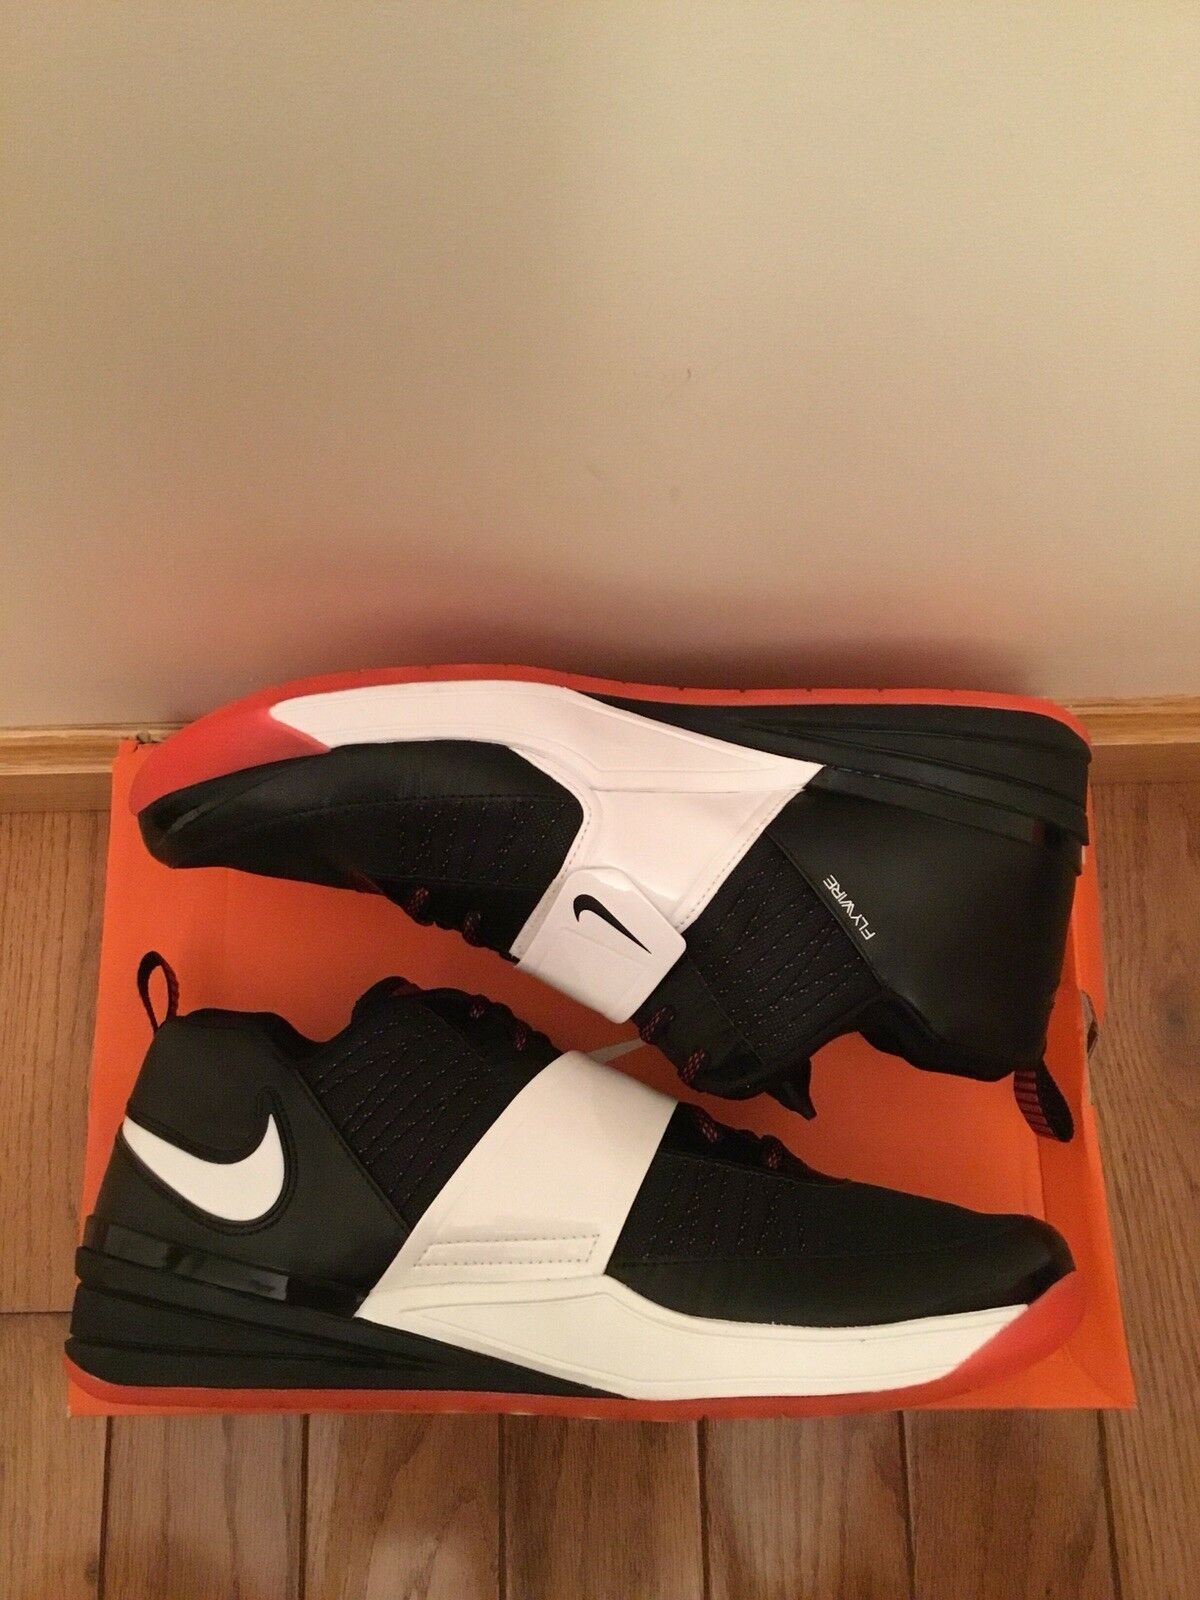 Nike Zoom Revis Blk wht Size 12 New